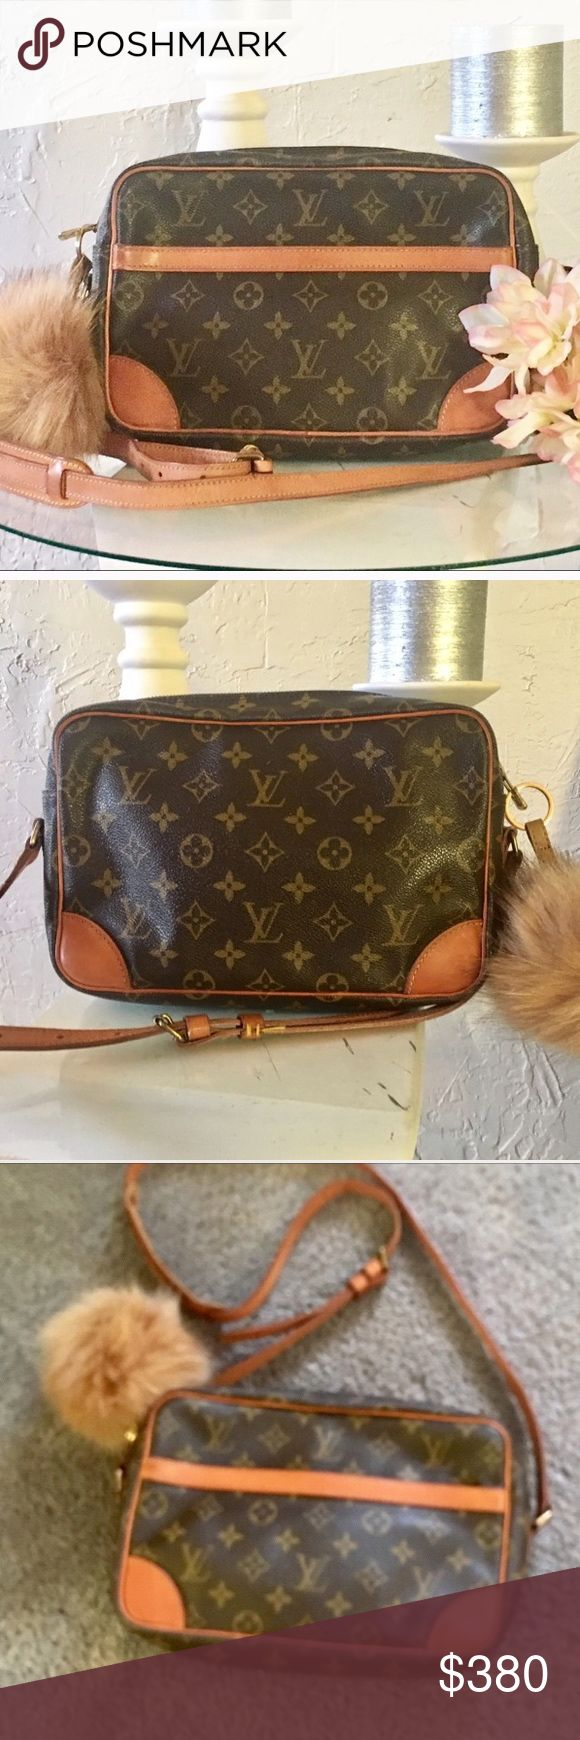 "% Authentic Louis Vuitton Tracadero Crossbody Authentic Louis Vuitton Tracadero 26 Crossbody monogram. Looks like new! Material monogram canvas and leather. Country manufacture France. W10.2"" H7.0"" D2.5""/strap drop 17.7-21.6"", one zippered pocket inside.!keychain included l. Bundle and save 15% Louis Vuitton Bags Crossbody Bags"